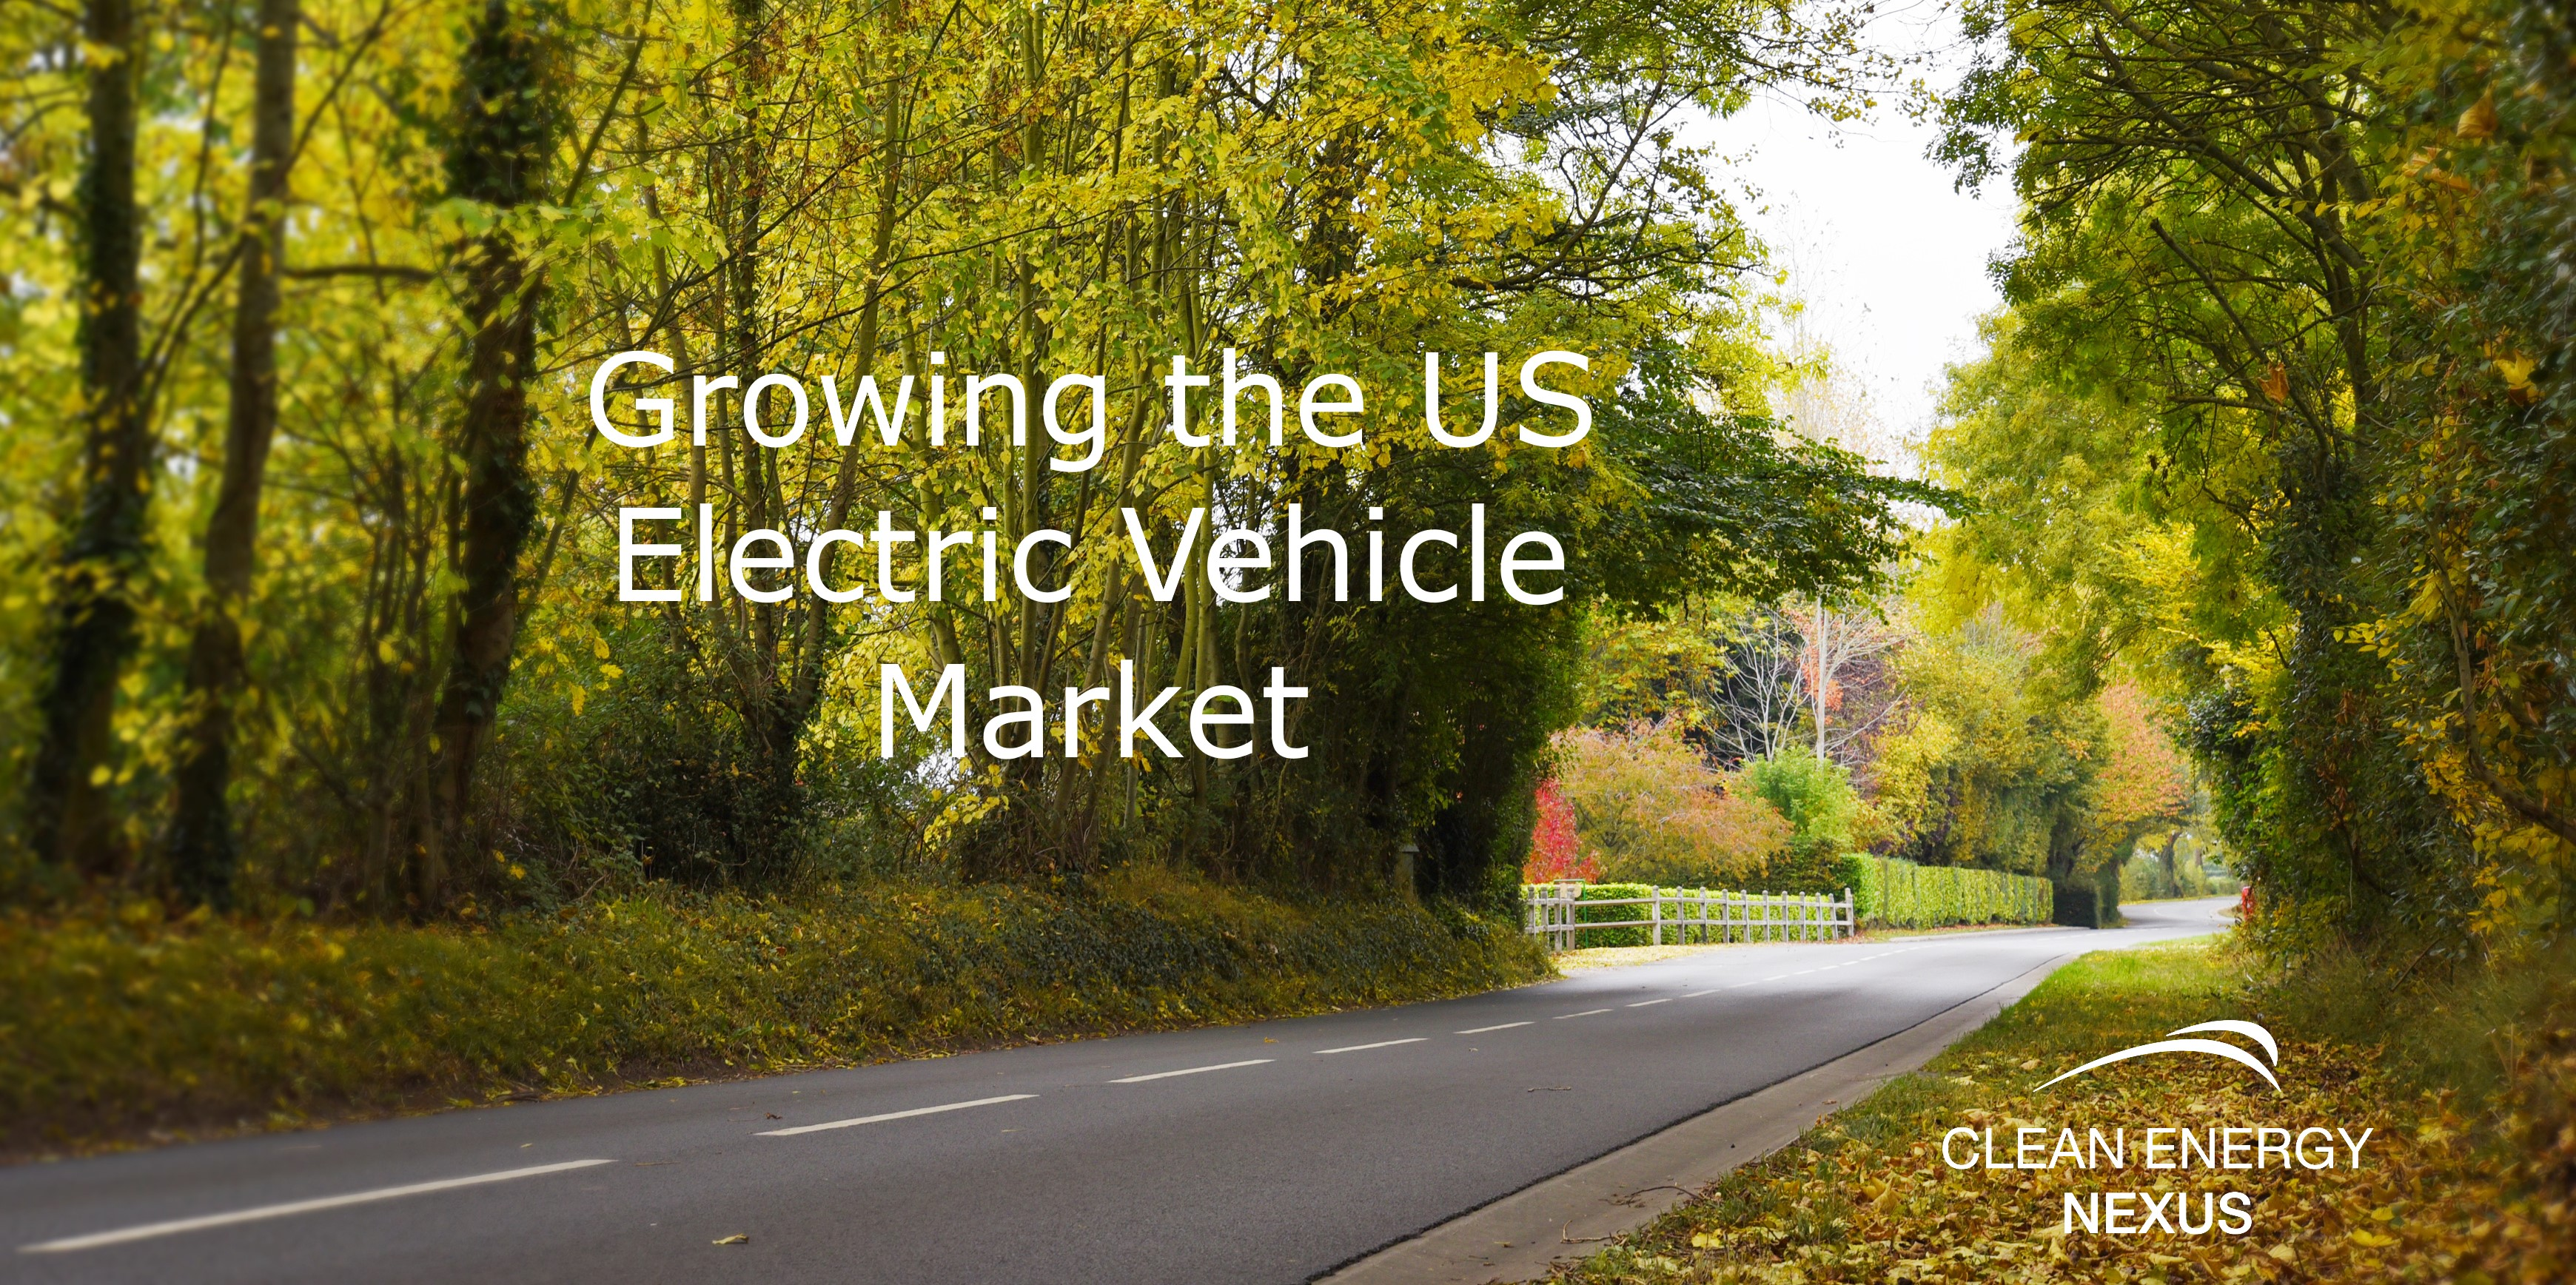 Growing the US Electric Vehicle Market